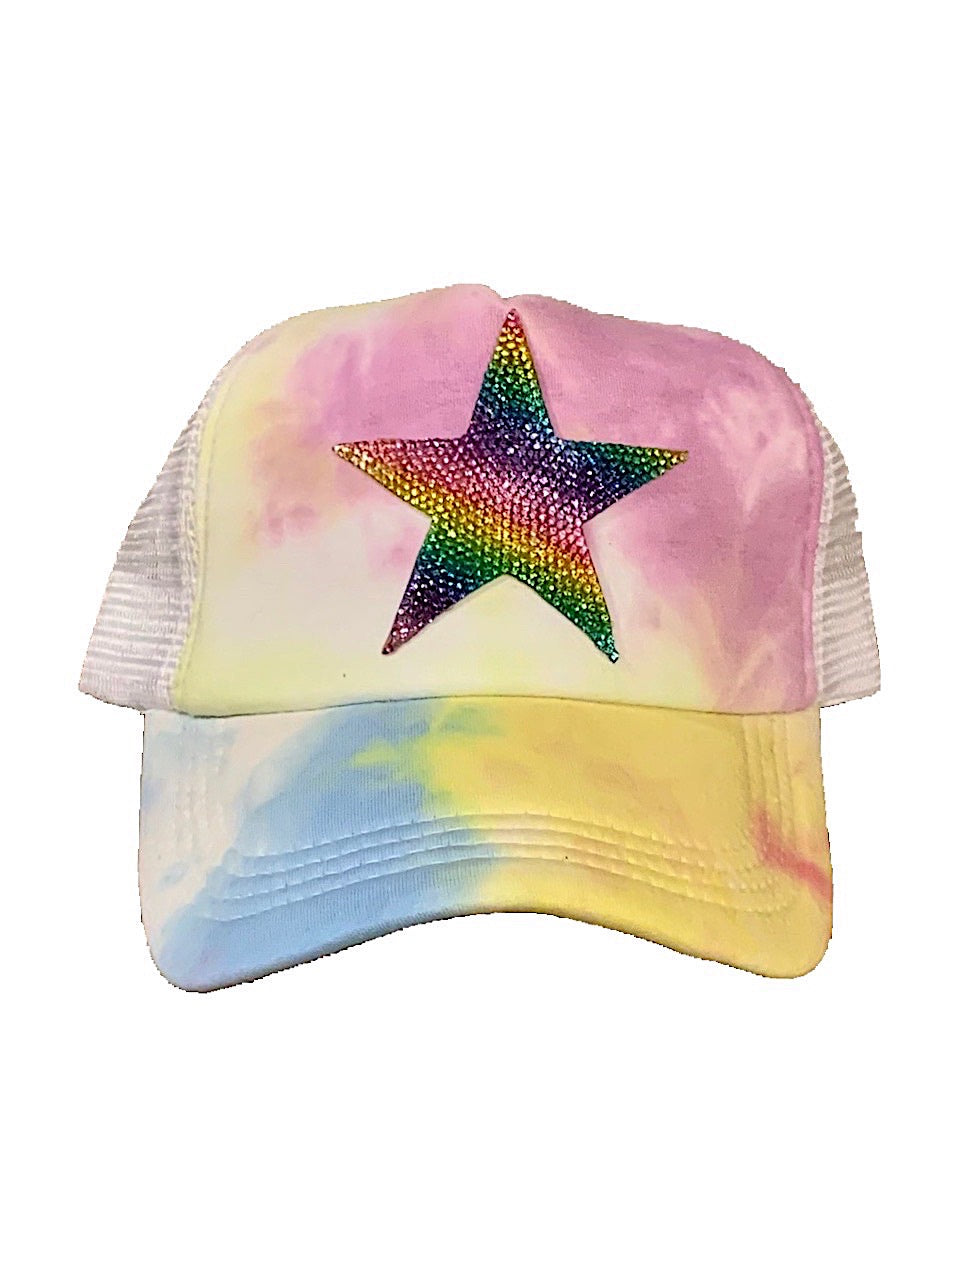 Crystallized Star Emoji Trucker Hat